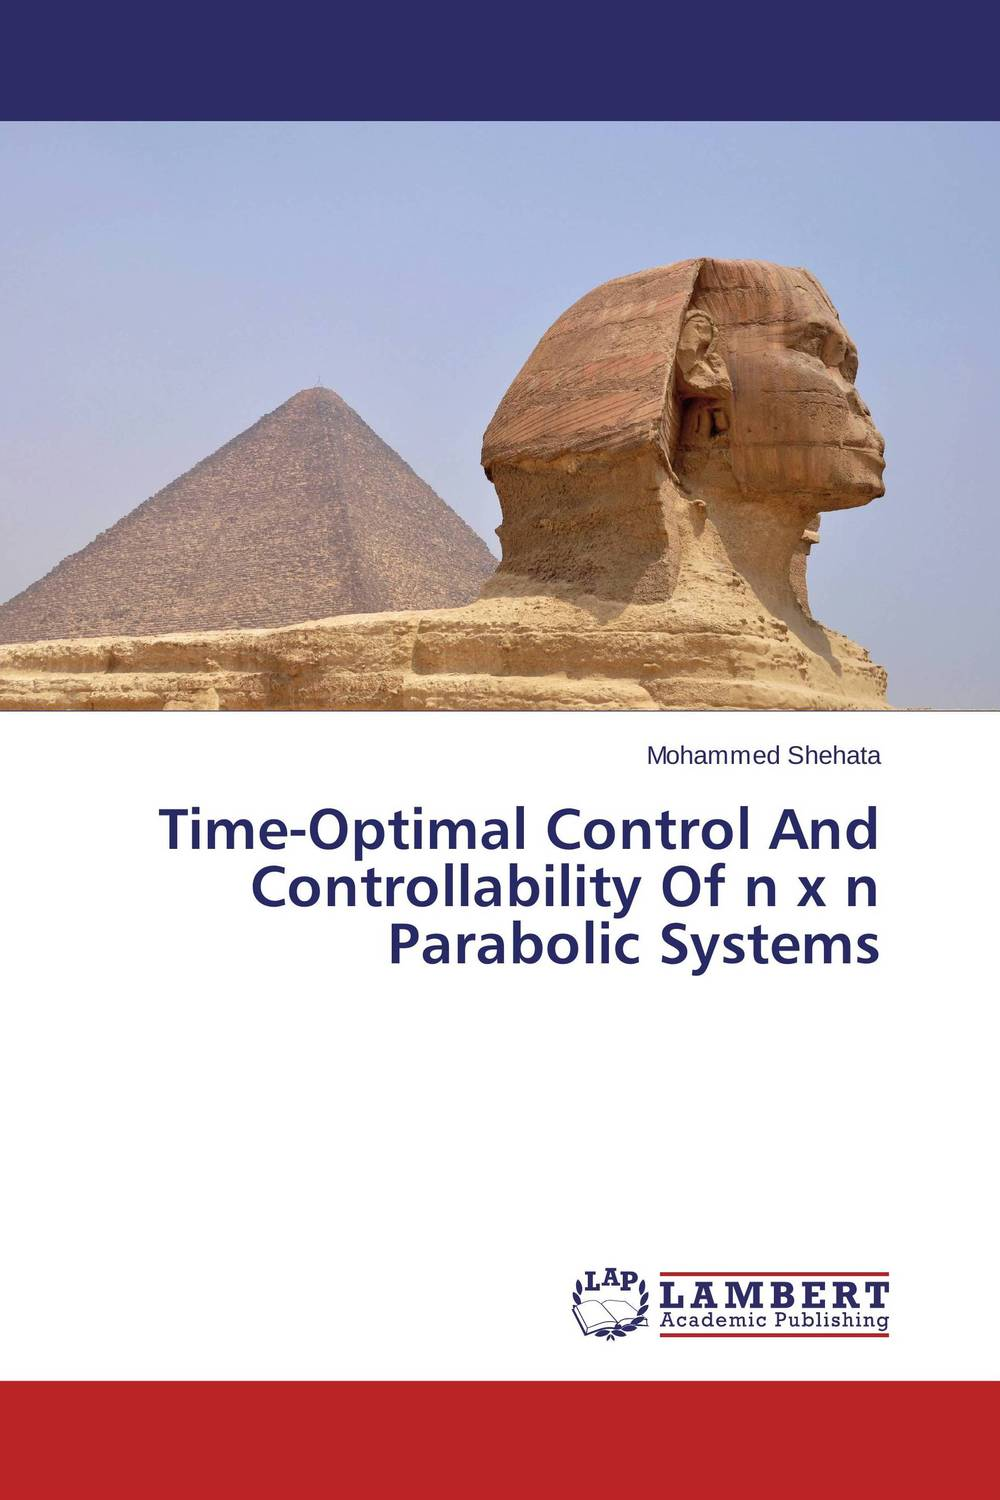 Time-Optimal Control And Controllability Of n x n Parabolic Systems thomas l vincent nonlinear and optimal control systems